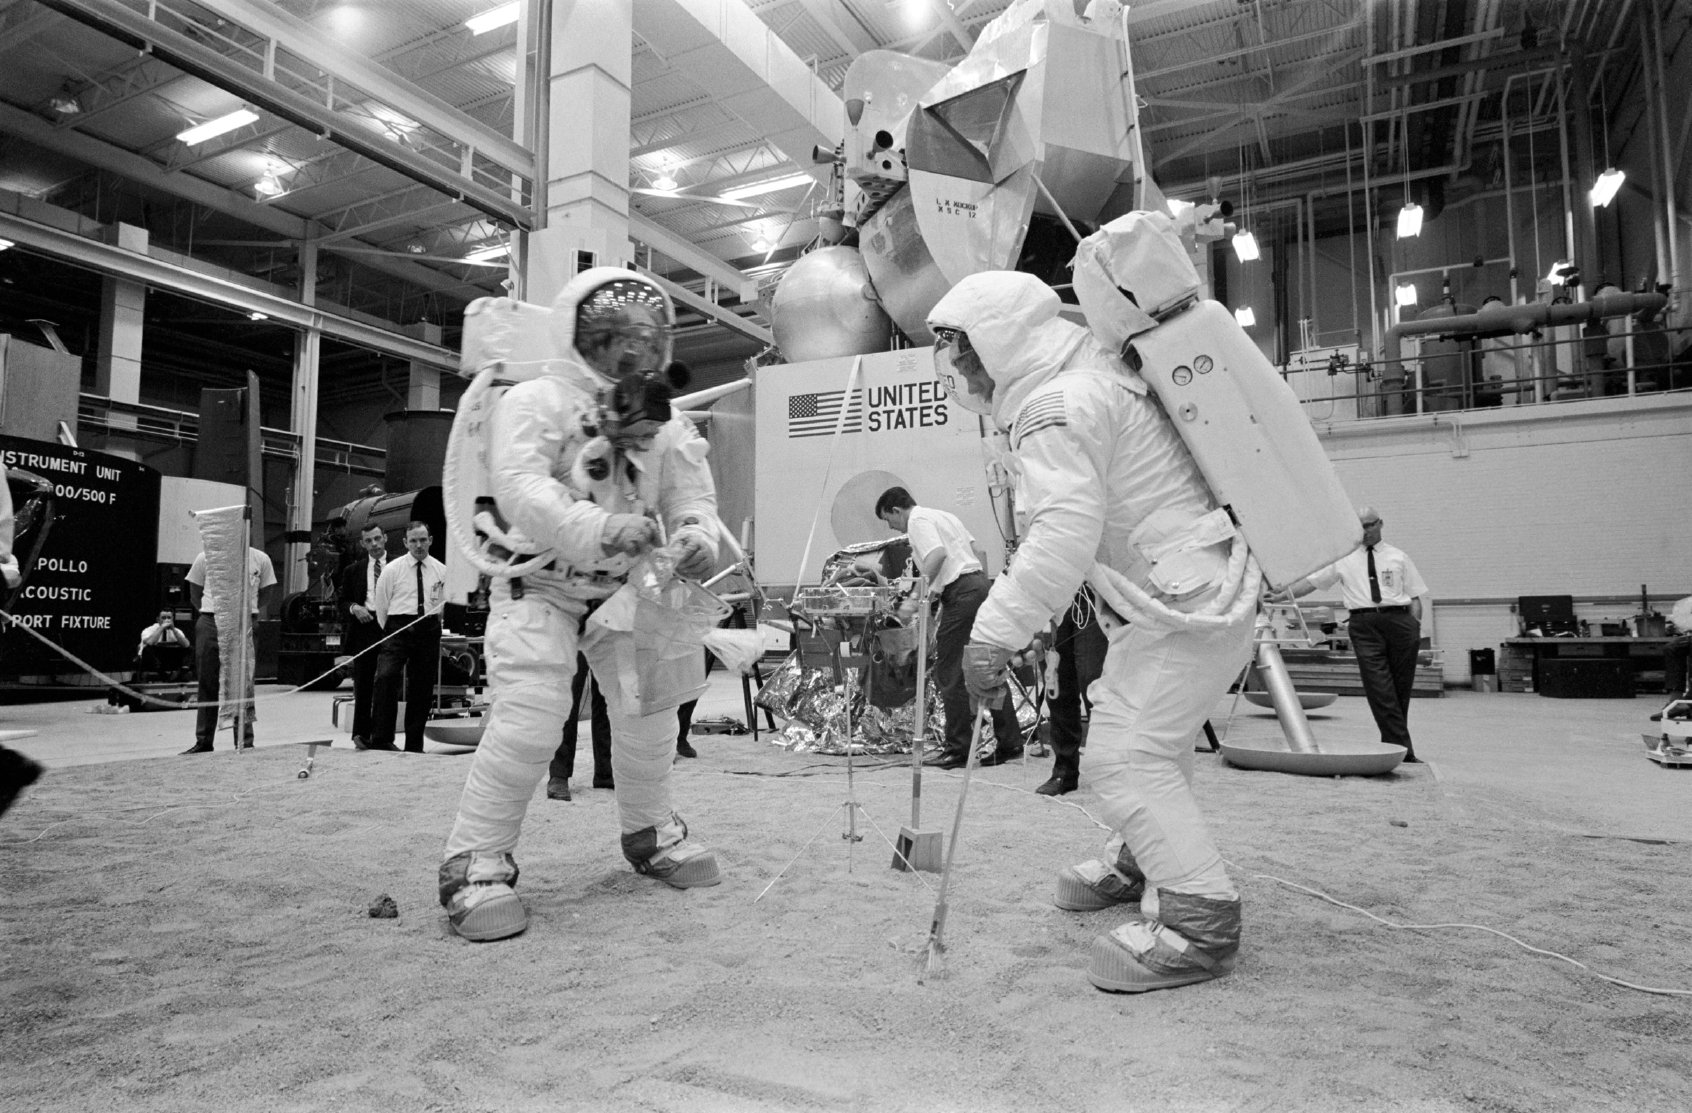 Apollo 14 Hamish Lindsay Ups Circuit Diagram Neil Armstrong Left And Buzz Aldrin During A Simulation Of The Eva In Building 9 At Msc Houston Image As11 S69 31123 Courtesy